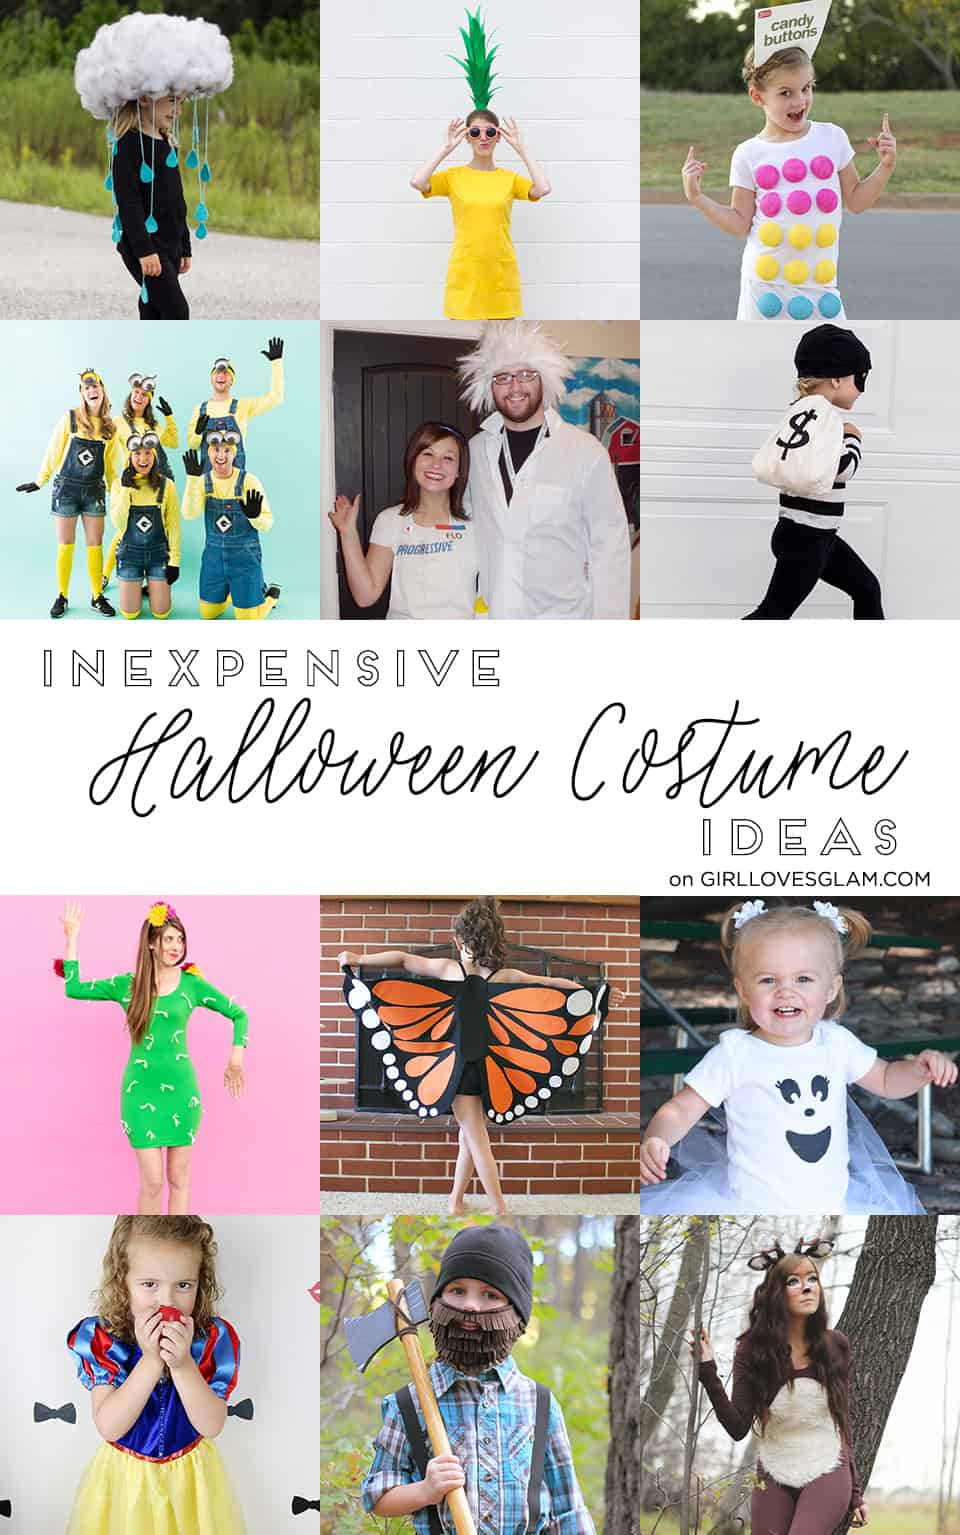 Inexpensive Halloween Costume Ideas on www.girllovesglam.com